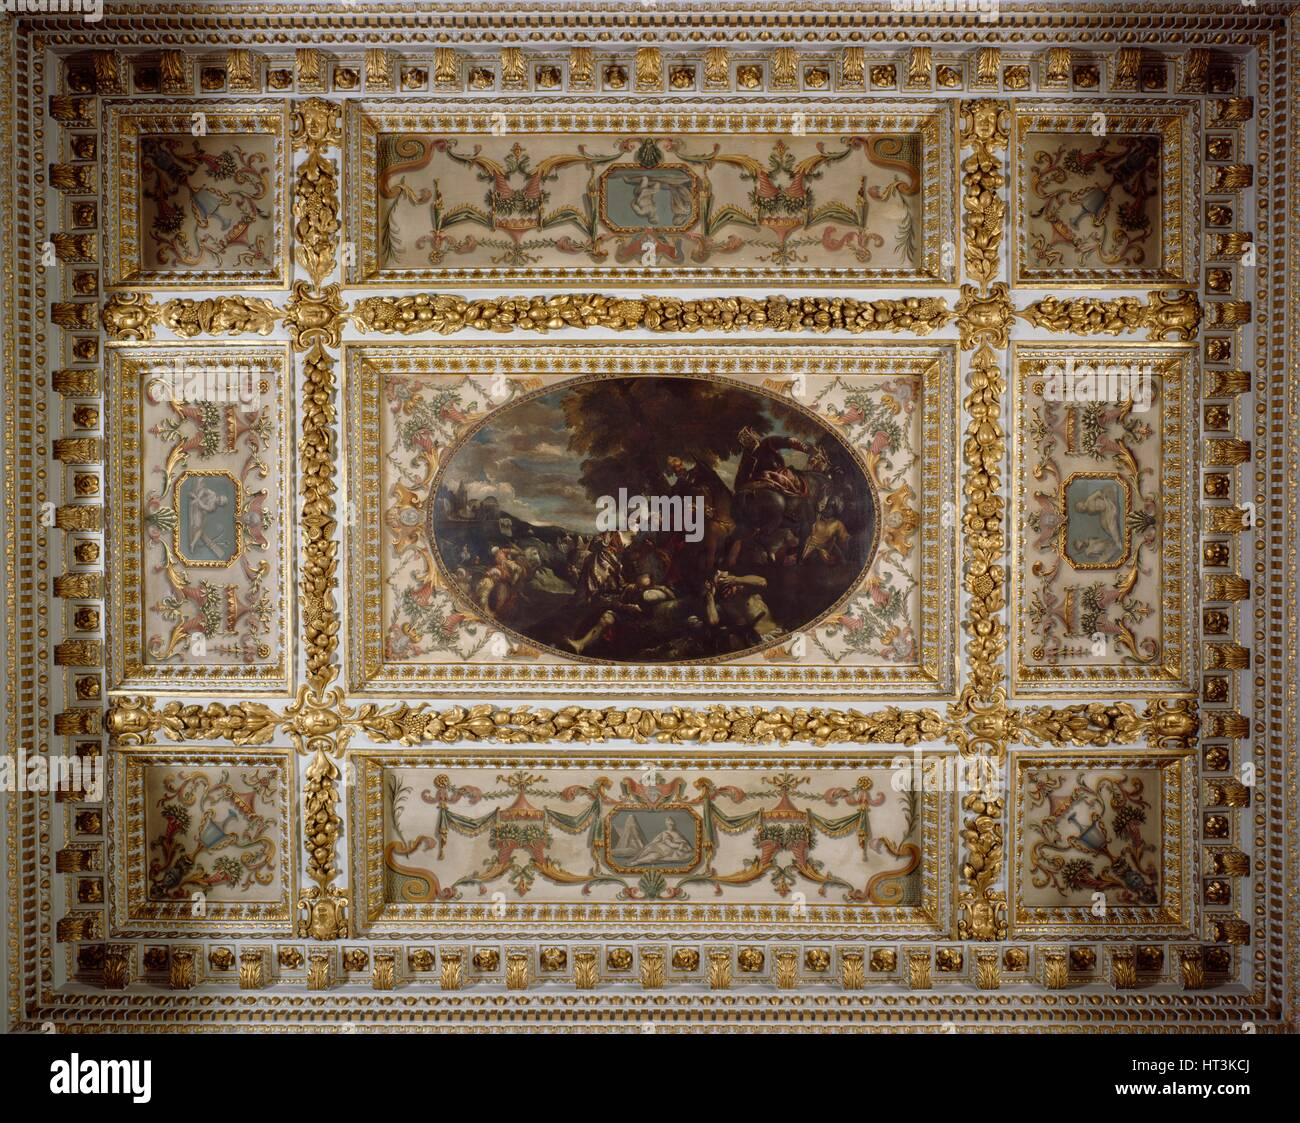 Defence of Scutari, Gallery ceiling, Chiswick House, c1990-2010. Artist: Nigel Corrie. - Stock Image